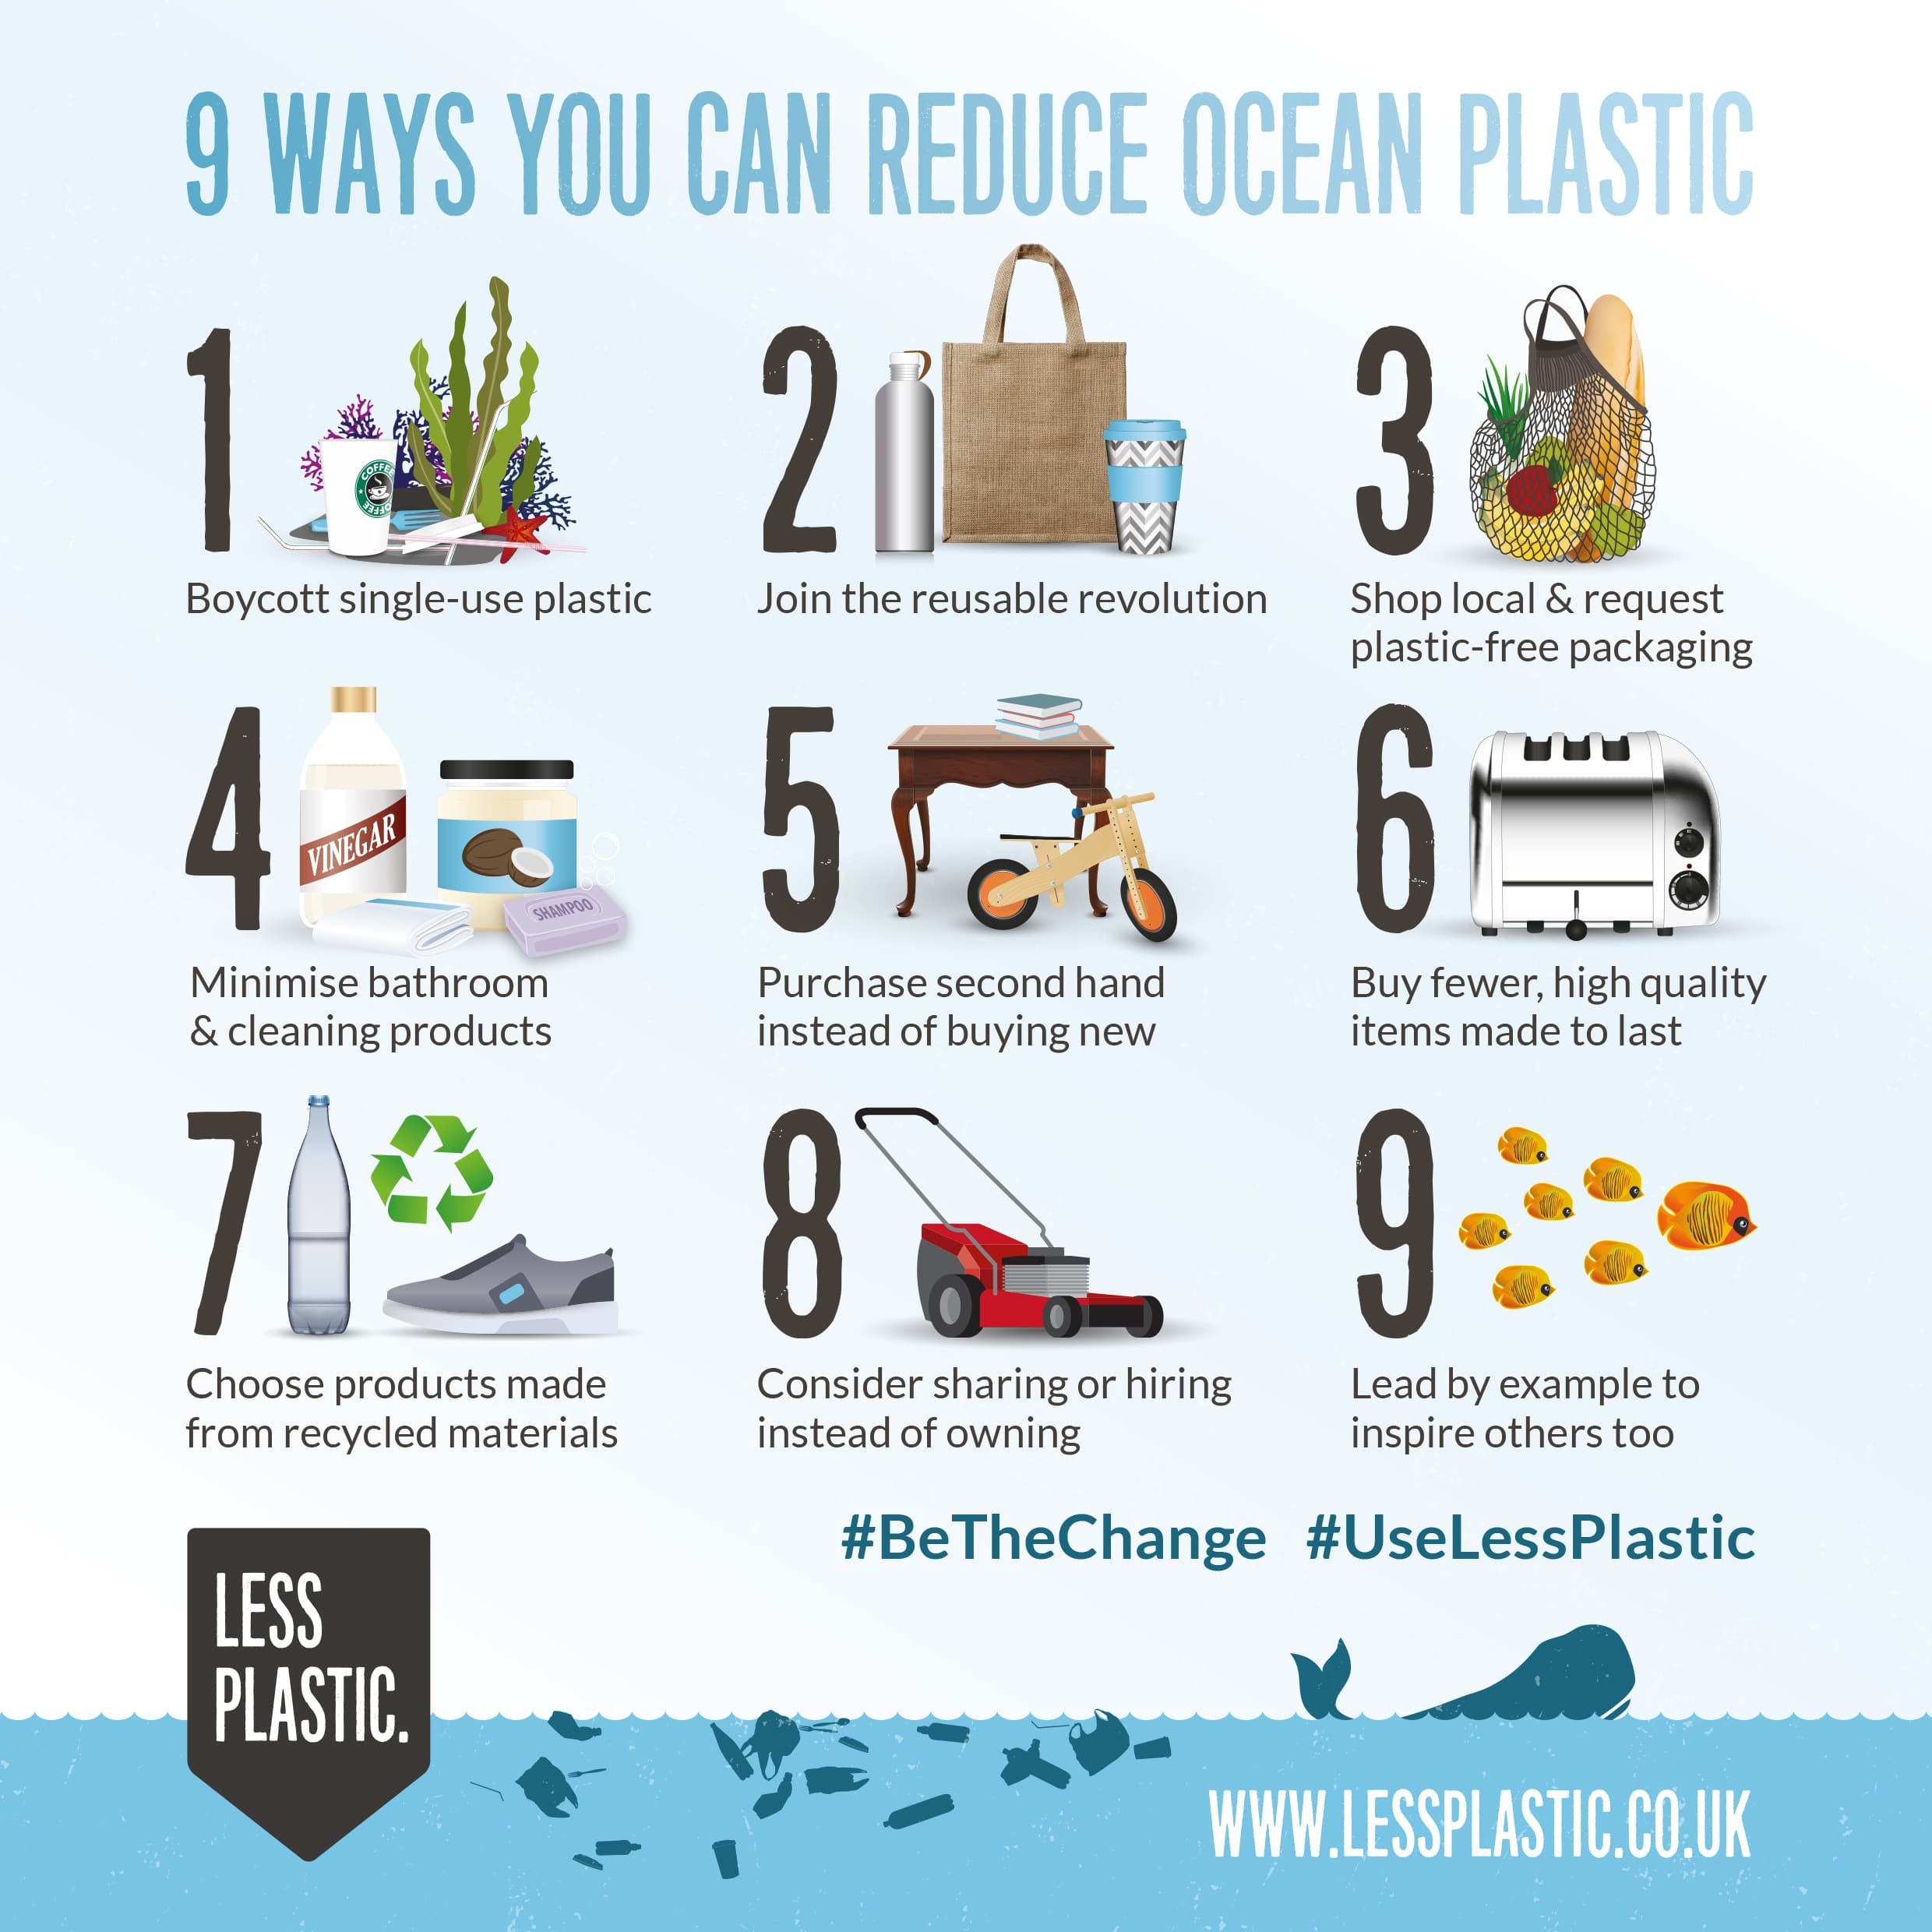 9 ways you can reduce ocean plastic infographic